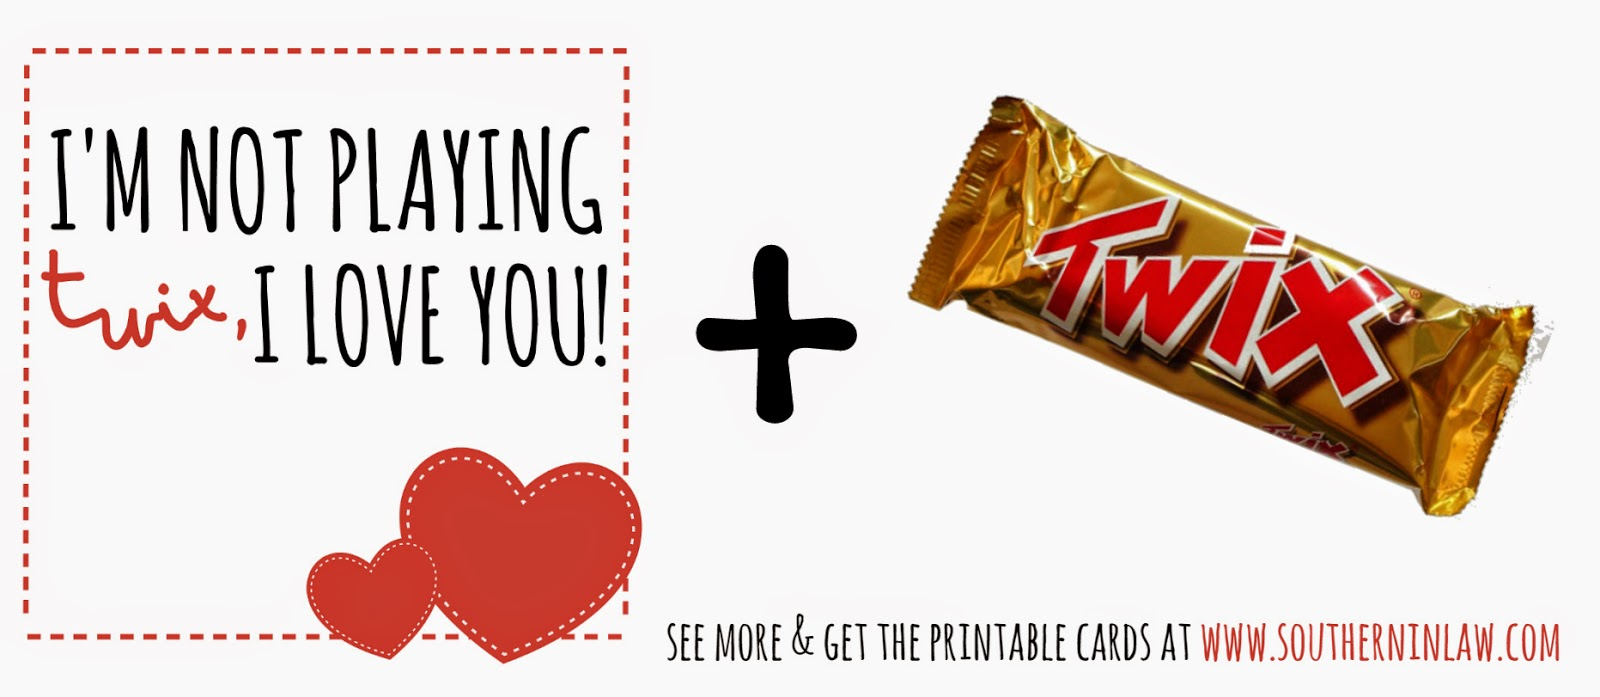 I'm not playing twix, I love you - Twix Bar Valentines Gift Idea - Punny Valentines Gift Ideas Free Printable Valentines Cards